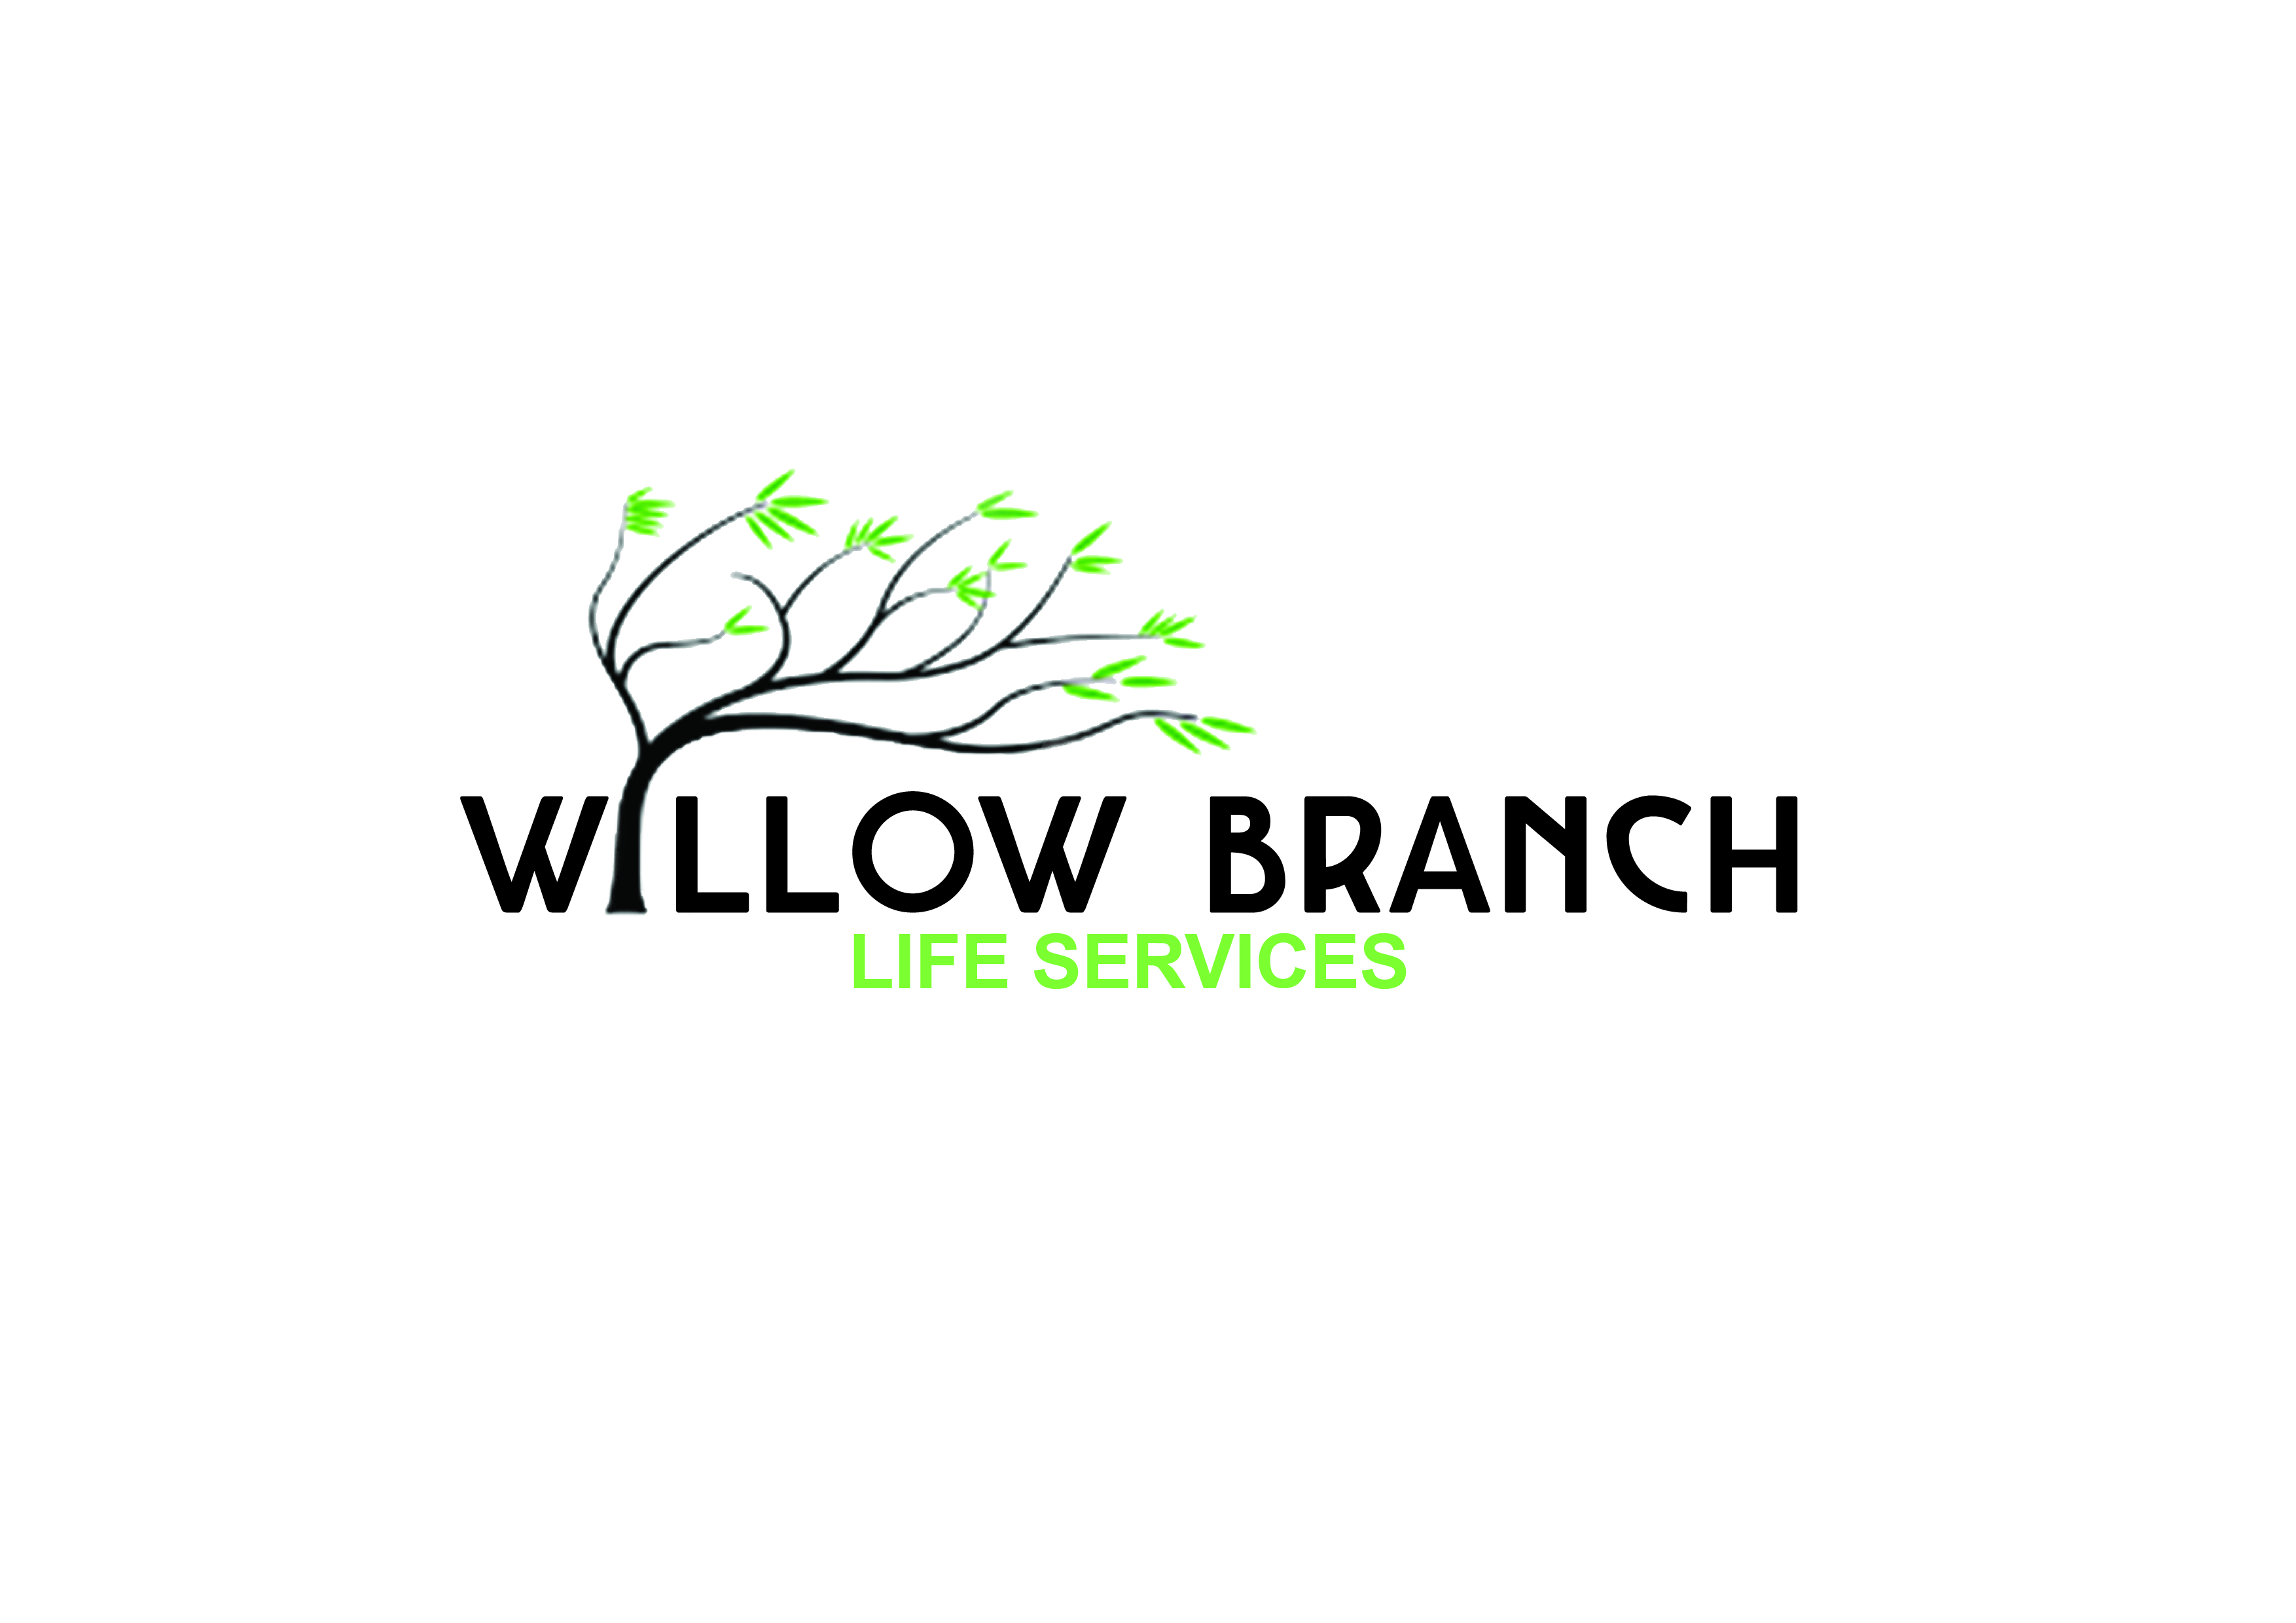 Logo Design by Anum Aamir - Entry No. 151 in the Logo Design Contest Artistic Logo Design for Willow Branch Life Service.